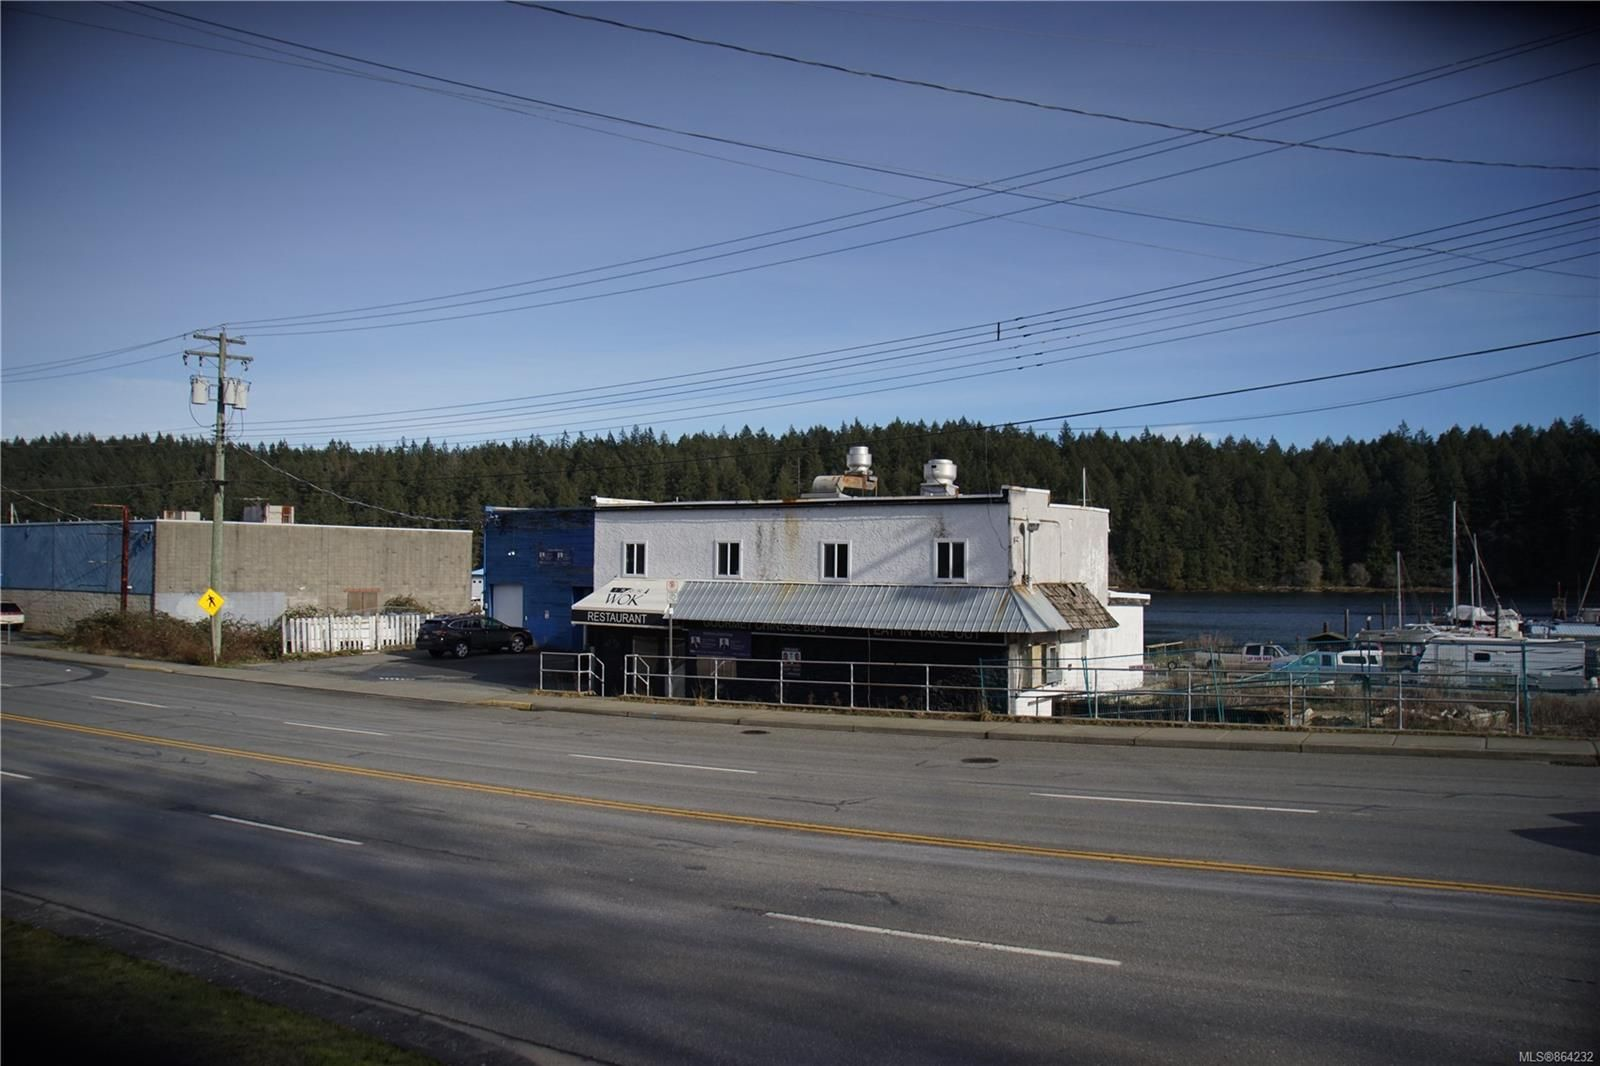 Photo 3: Photos: 1340-1370 Stewart Ave in : Na Brechin Hill Mixed Use for sale (Nanaimo)  : MLS®# 864232